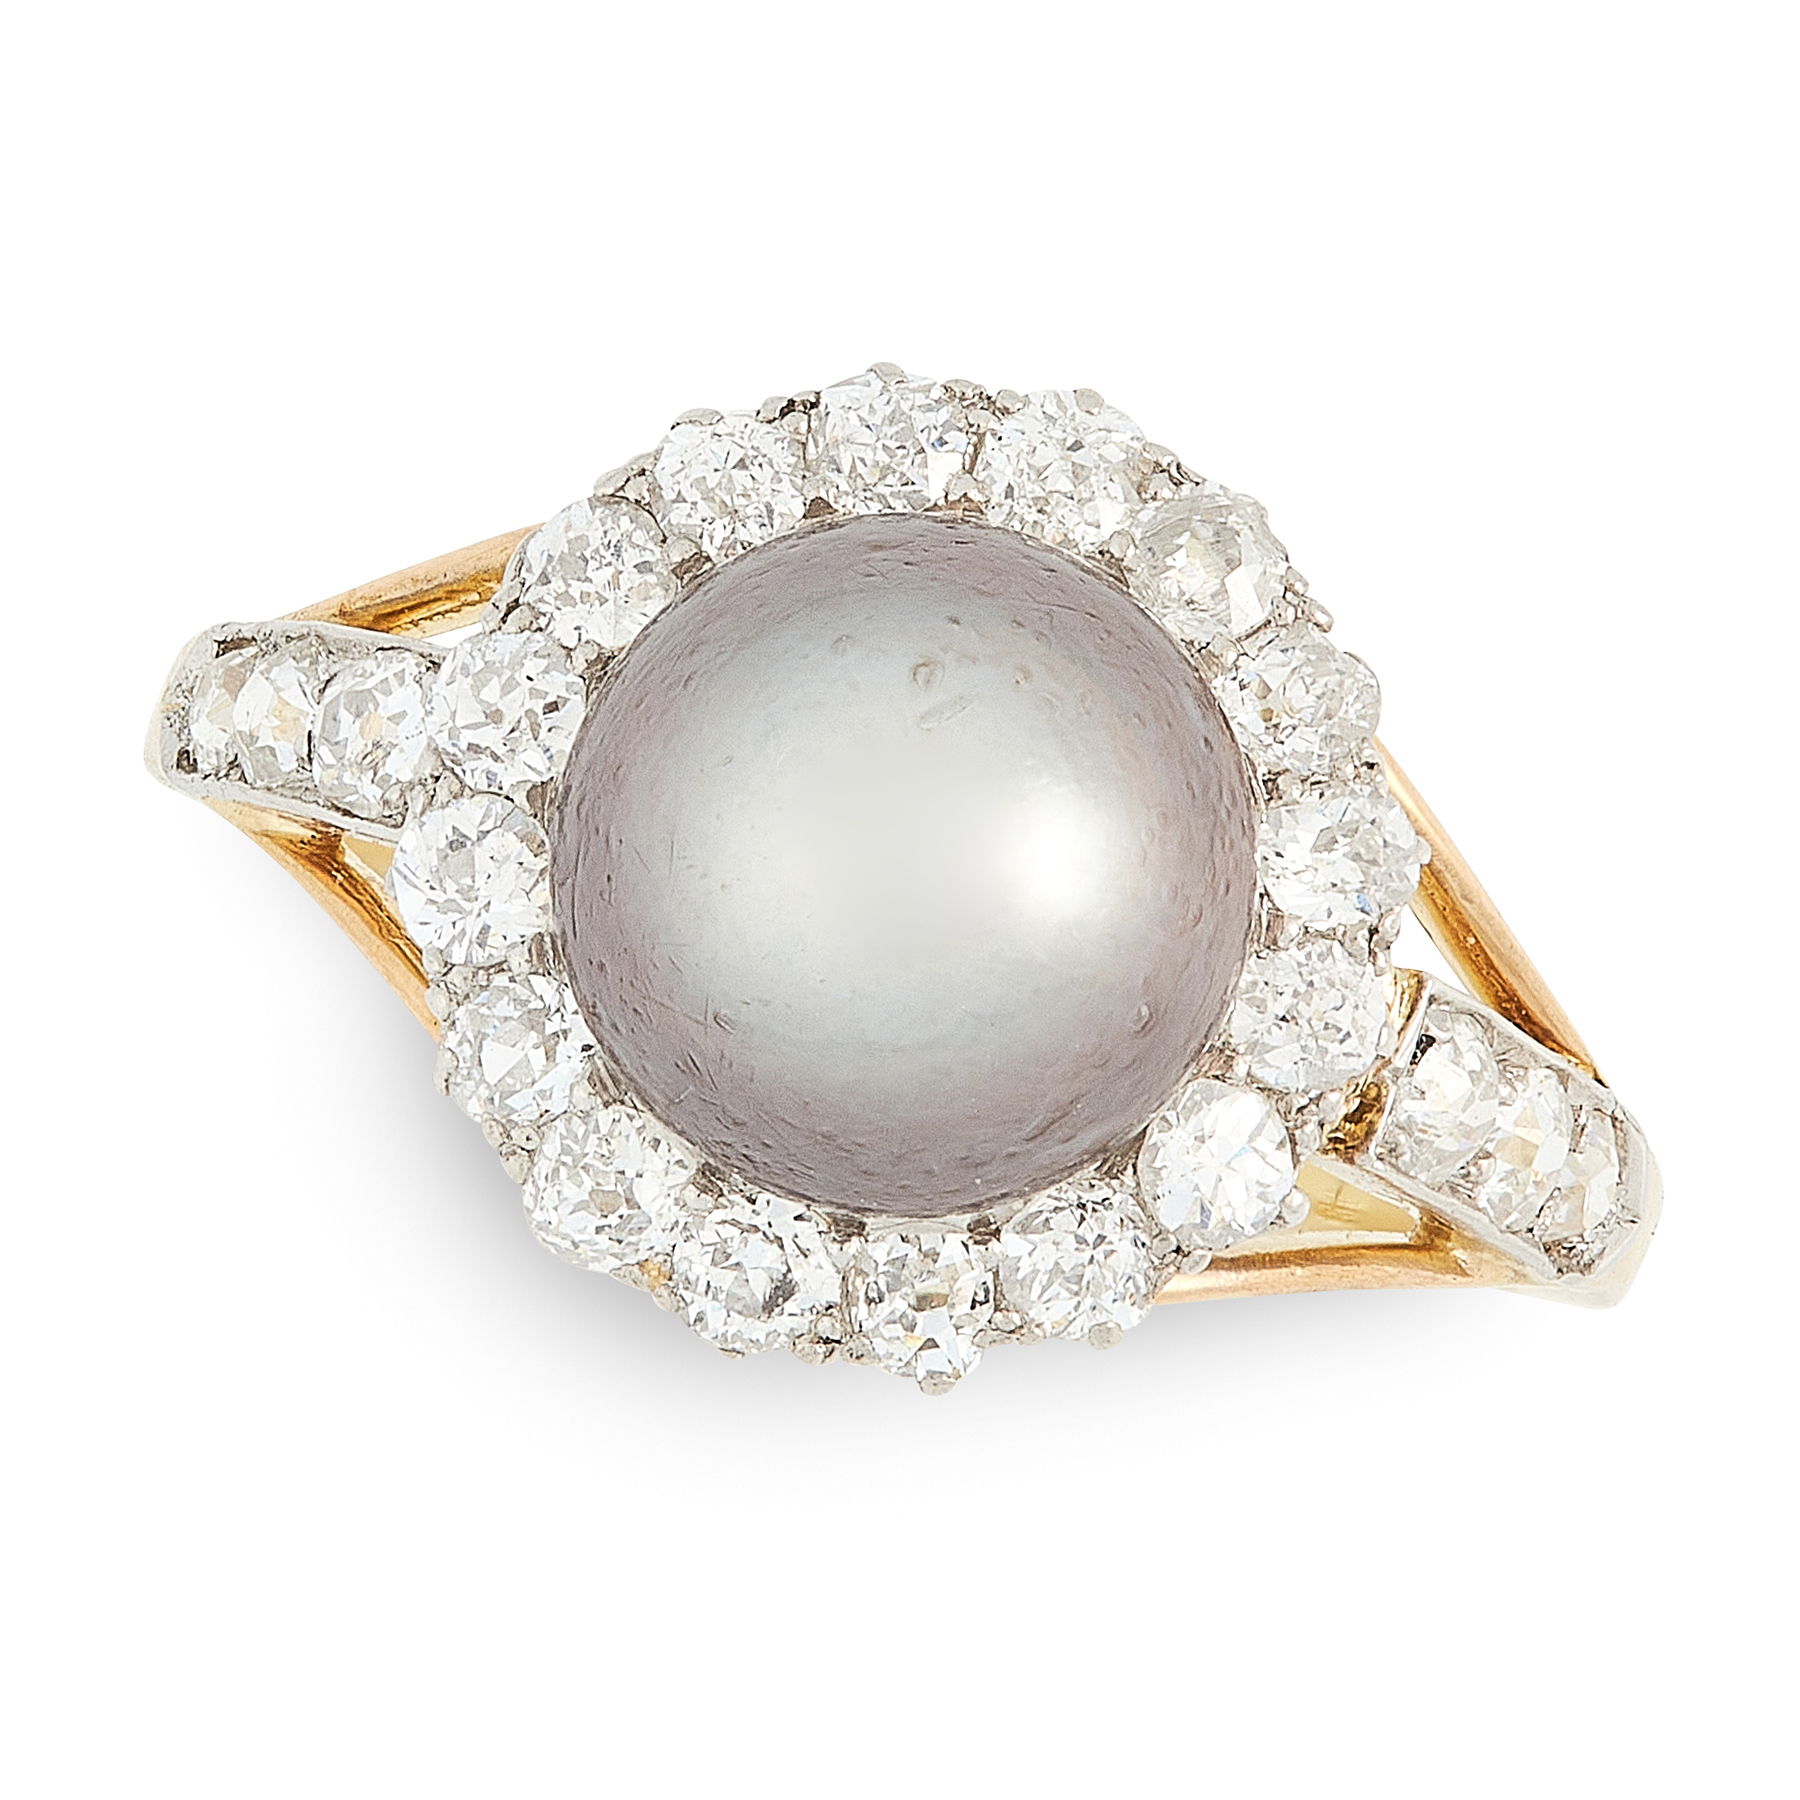 A NATURAL PEARL AND DIAMOND RING in yellow gold, set with a grey pearl of 8.58mm, weighing 3.87